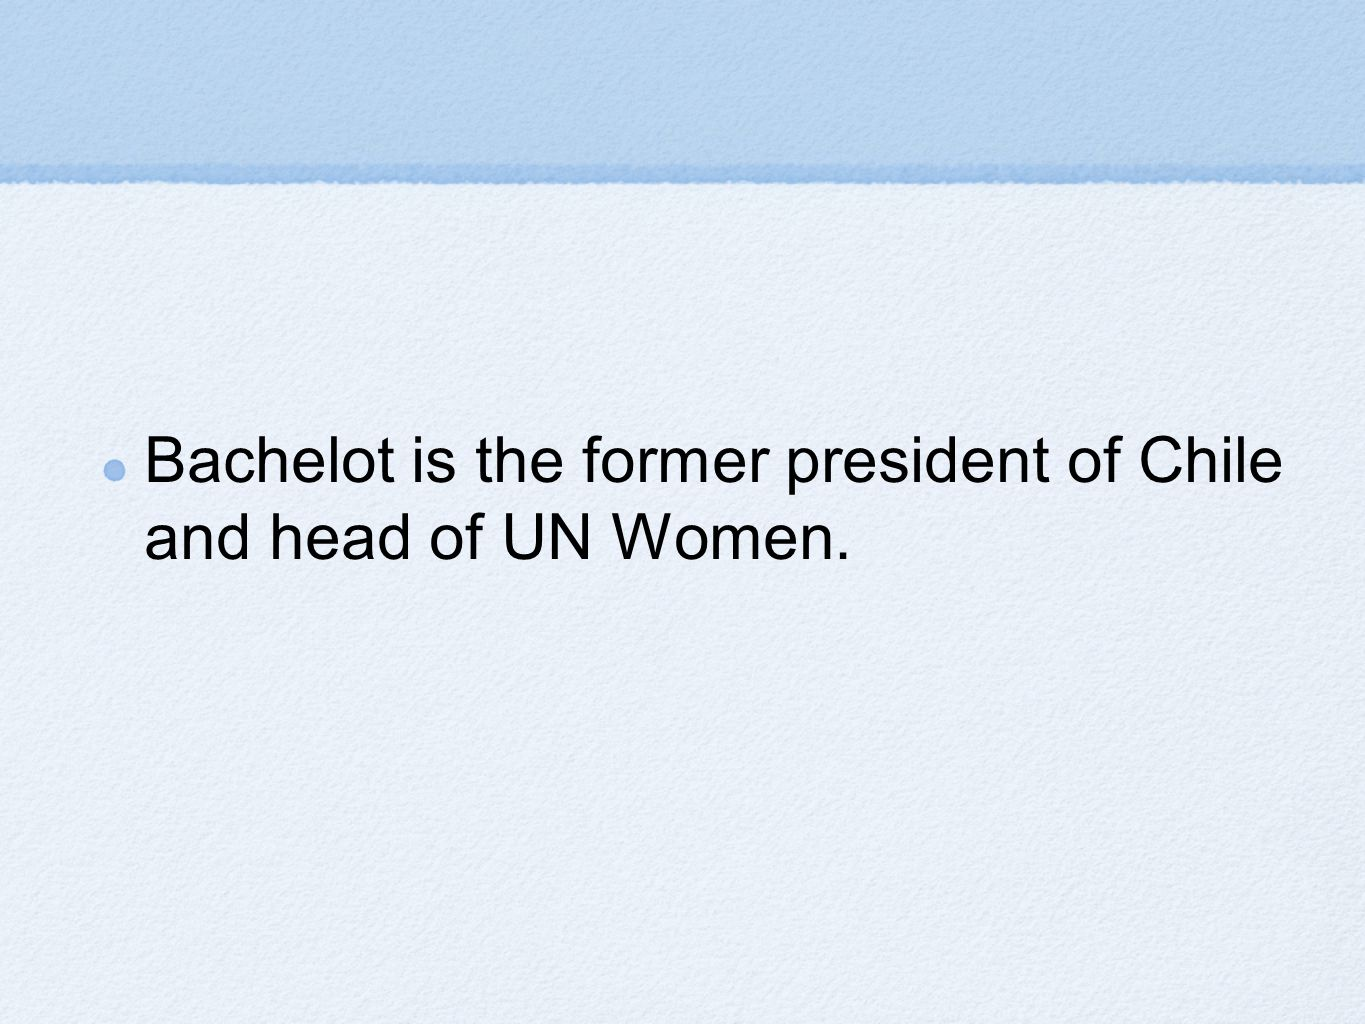 Bachelot is the former president of Chile and head of UN Women.